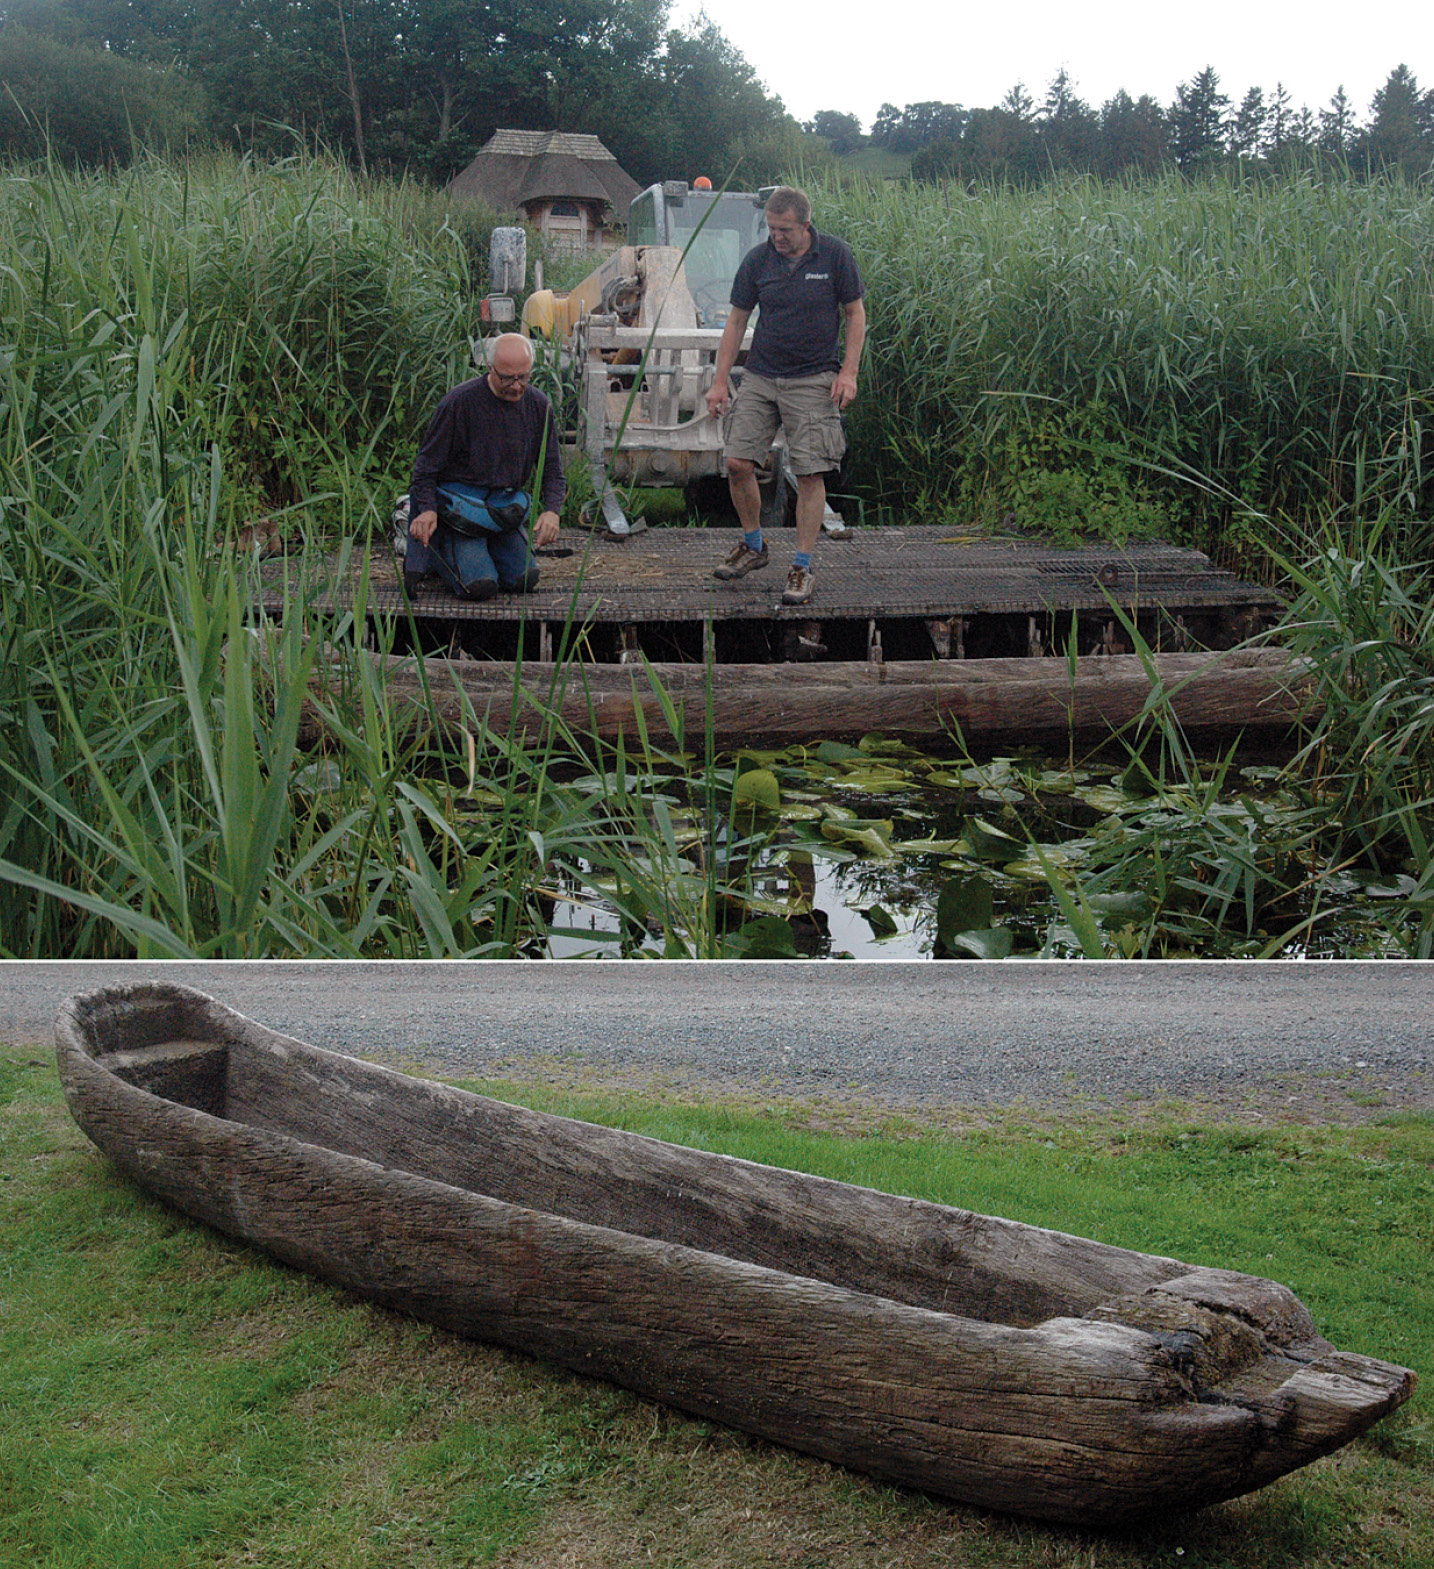 left The 1993 Time Team boat being inspected and relaunched in 2016, after having been dried and caulked. The thatched visitor centre can be seen in the background. below The Clapton logboat (a replica of a late Saxon logboat found in the River Lea in London in 1987) undergoing performance trials on Llangorse Lake in 1990.